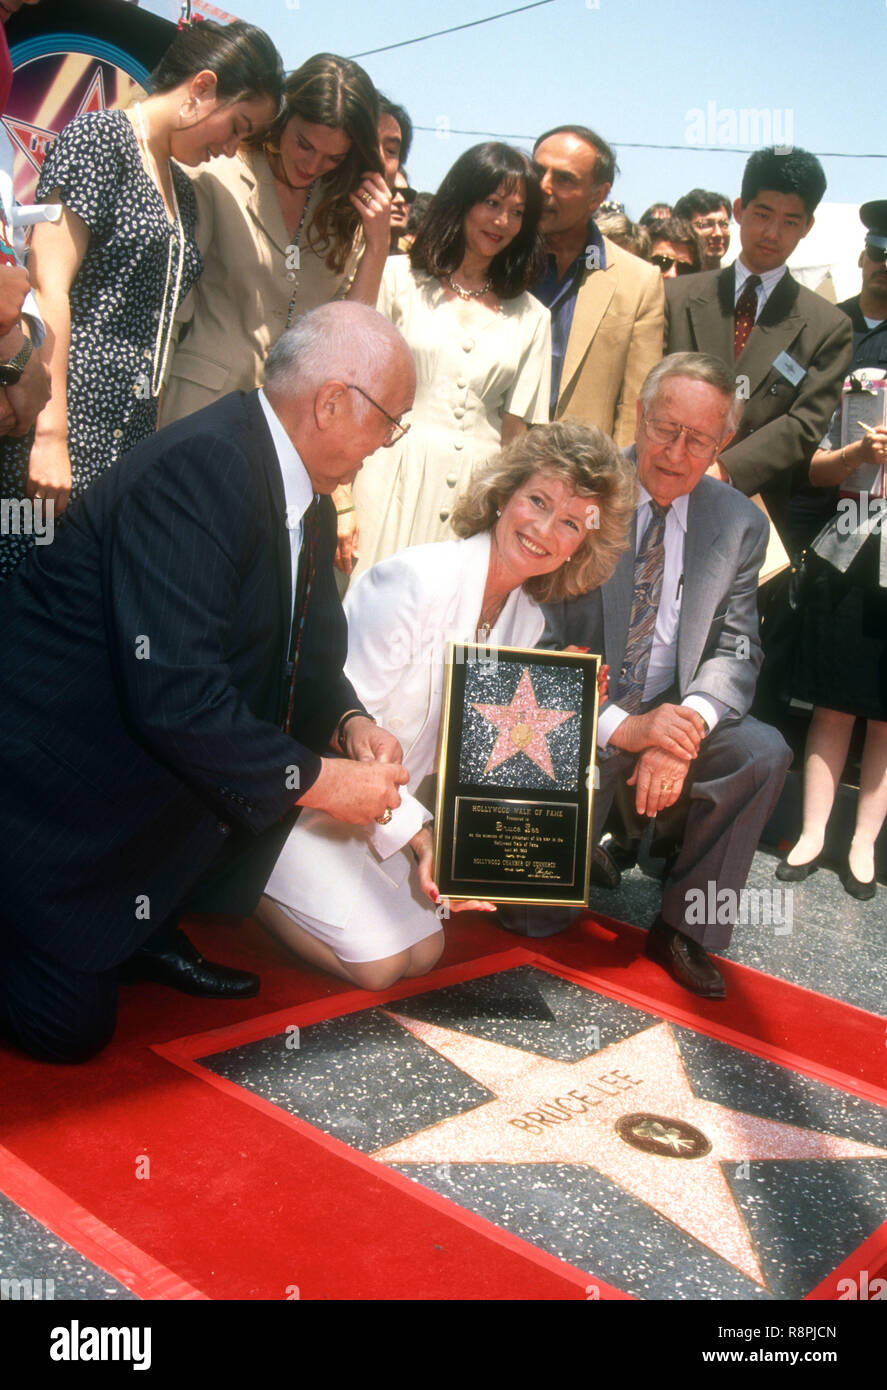 Hollywood Ca April 28 Shannon Lee Mother Linda Lee Caldwell Eliza Hutton And Robert Lee Attend The Hollywood Walk Of Fame Ceremony For Bruce Lee On April 28 1993 At 6933 Born on 9th february, 1964 in kansas city, missouri, she is famous for was engaged to brandon lee. https www alamy com hollywood ca april 28 shannon lee mother linda lee caldwell eliza hutton and robert lee attend the hollywood walk of fame ceremony for bruce lee on april 28 1993 at 6933 hollywood boulevard in hollywood california photo by barry kingalamy stock photo image229149445 html